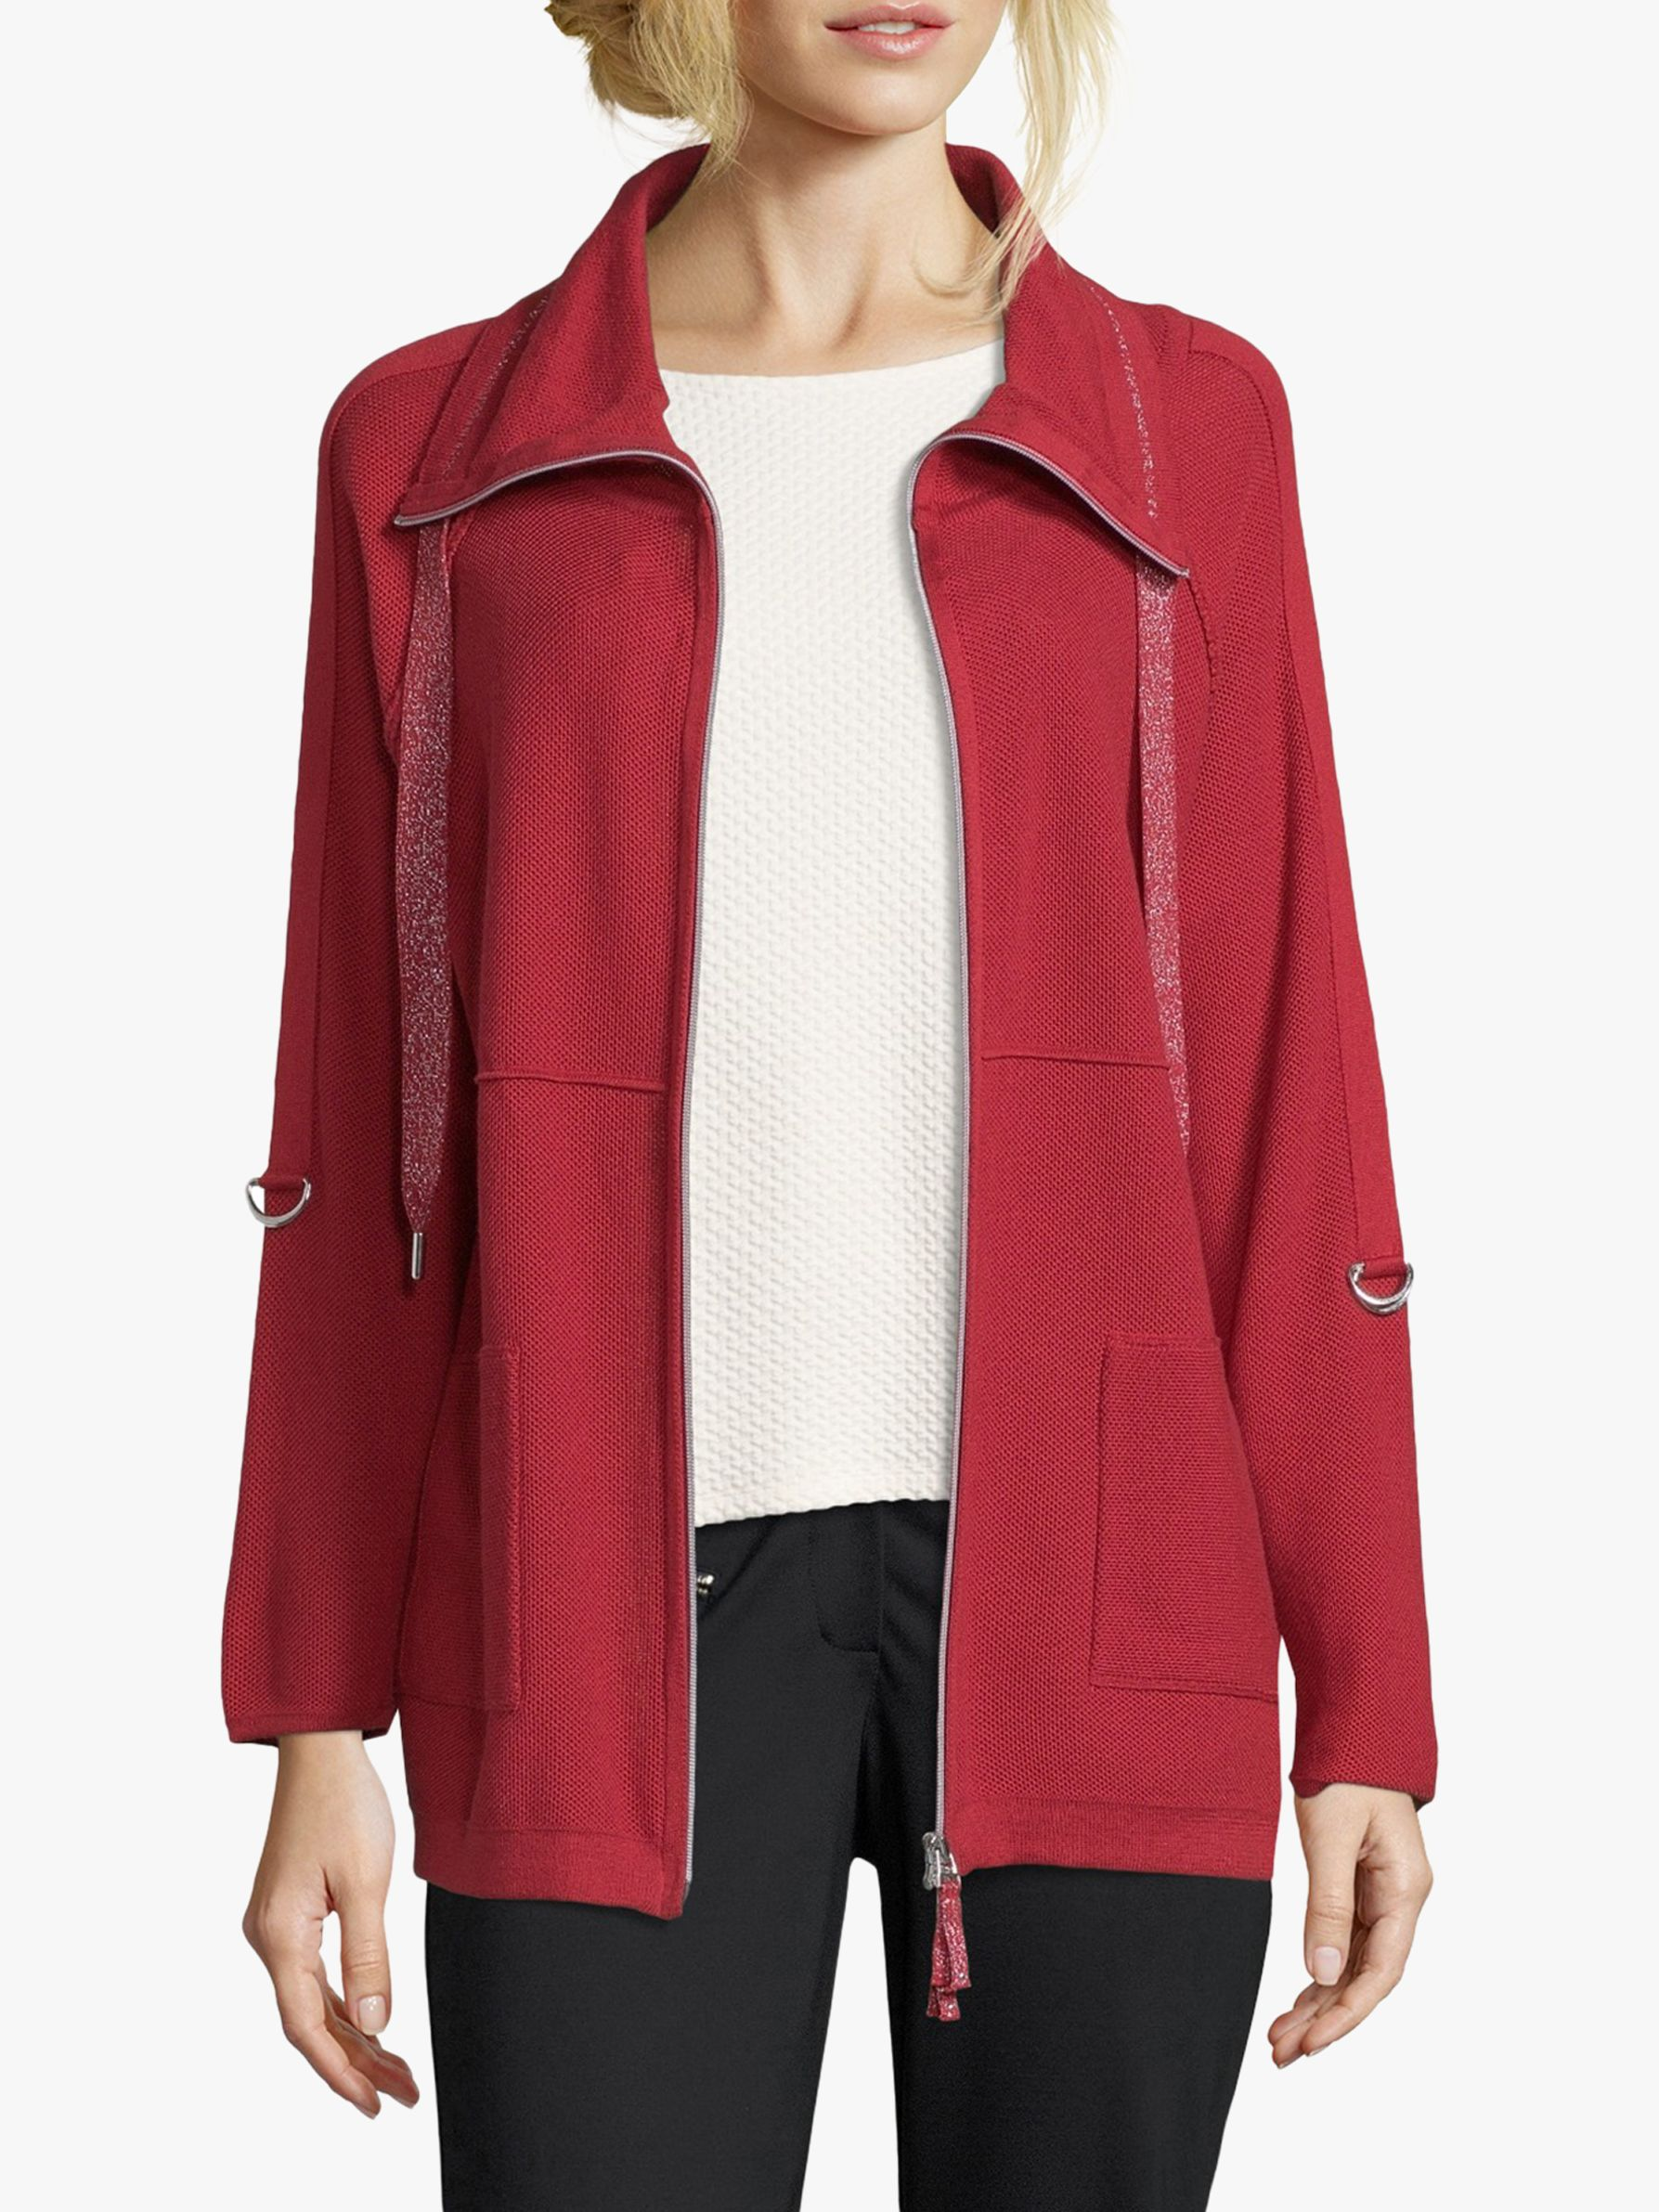 Betty Barclay Betty Barclay Funnel Neck Cardigan, Red Scarlet